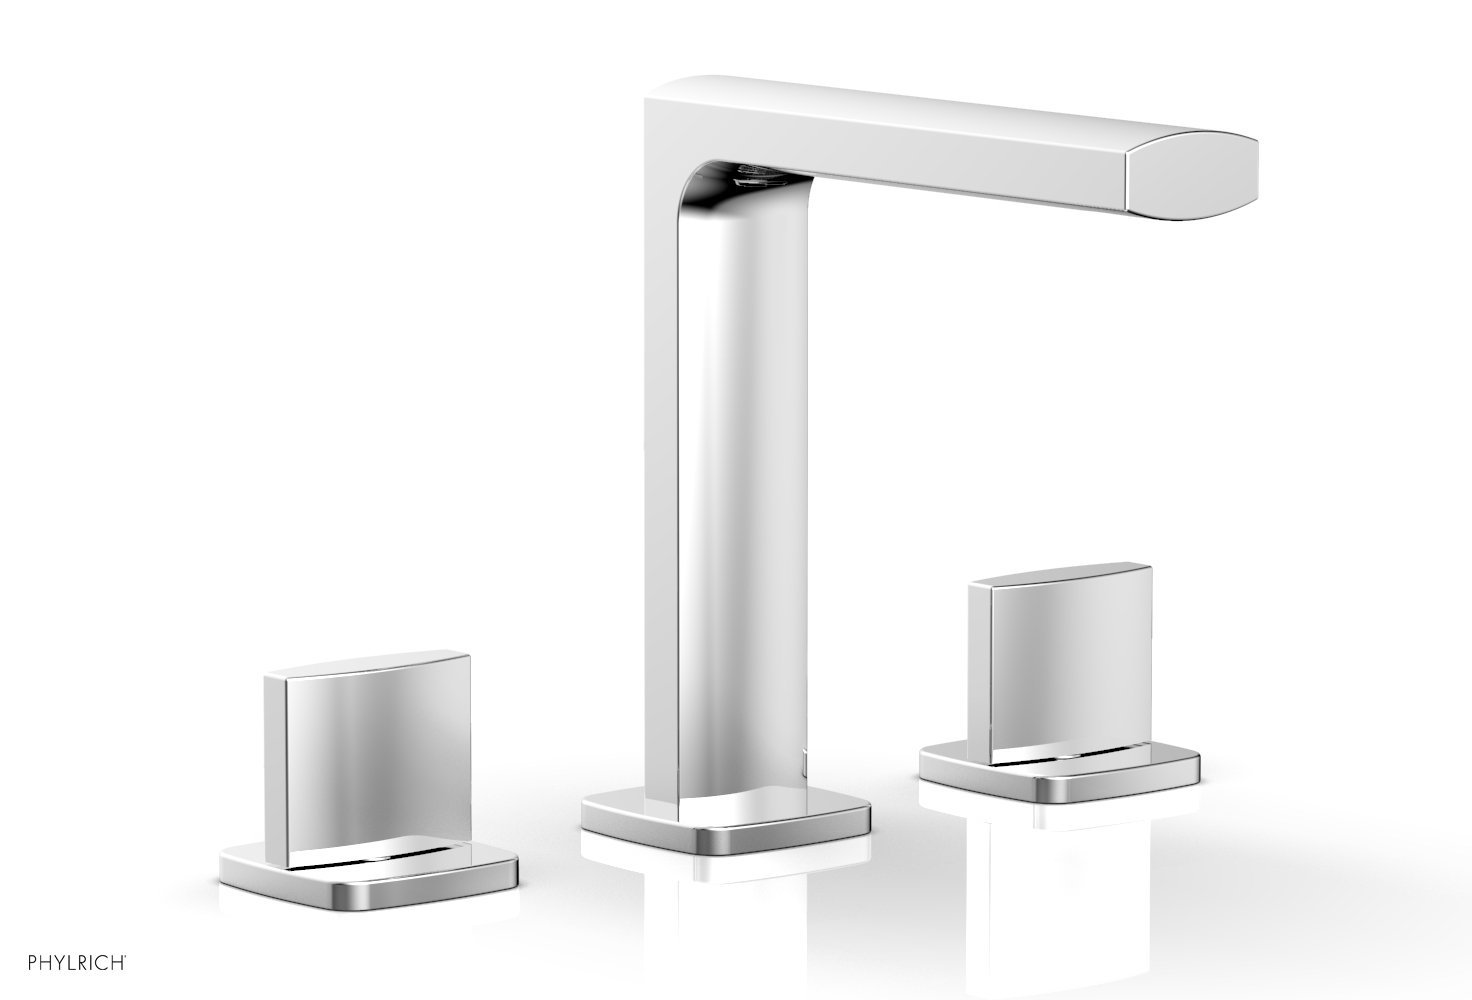 Phylrich 181-01-026 RADI Widespread Faucet - Blade Handle High Spout - Polished Chrome